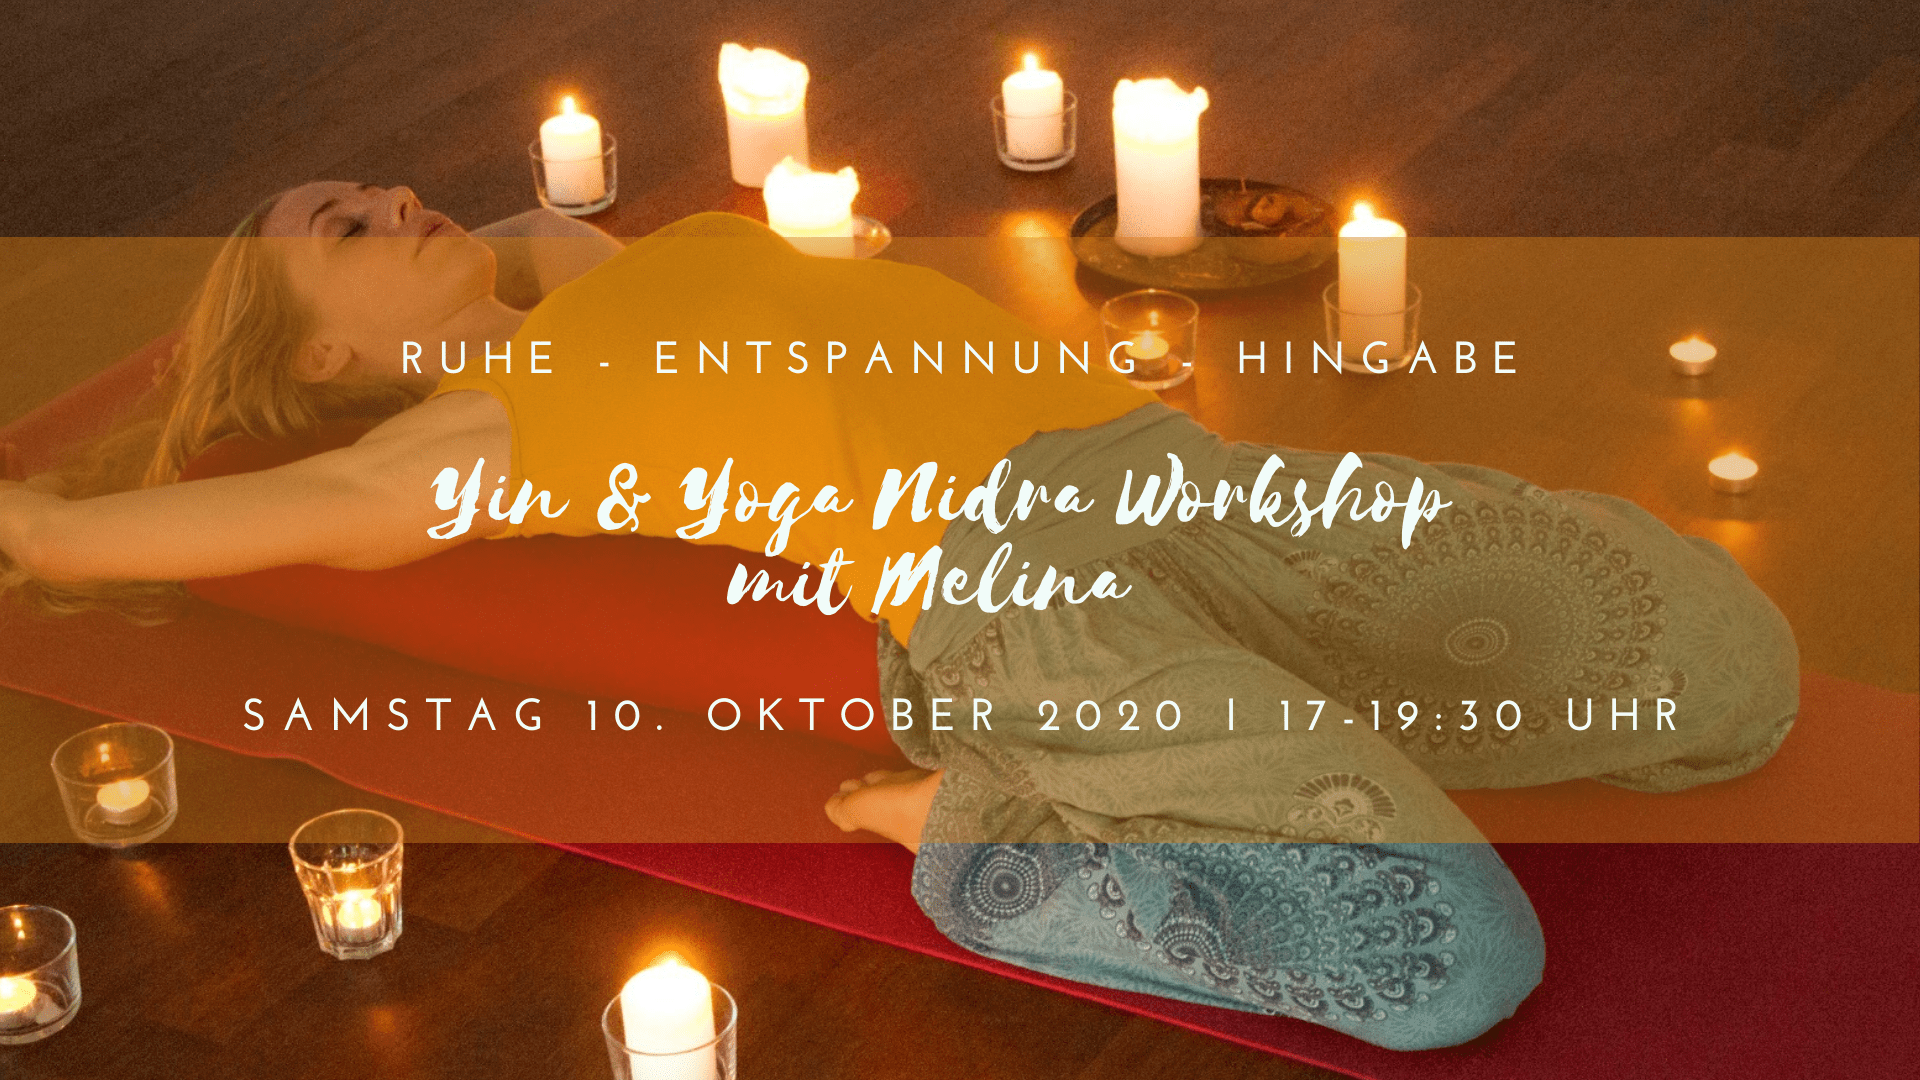 Yogamelange_Yin Yoga Nidra Workshop mit Melina 20201010